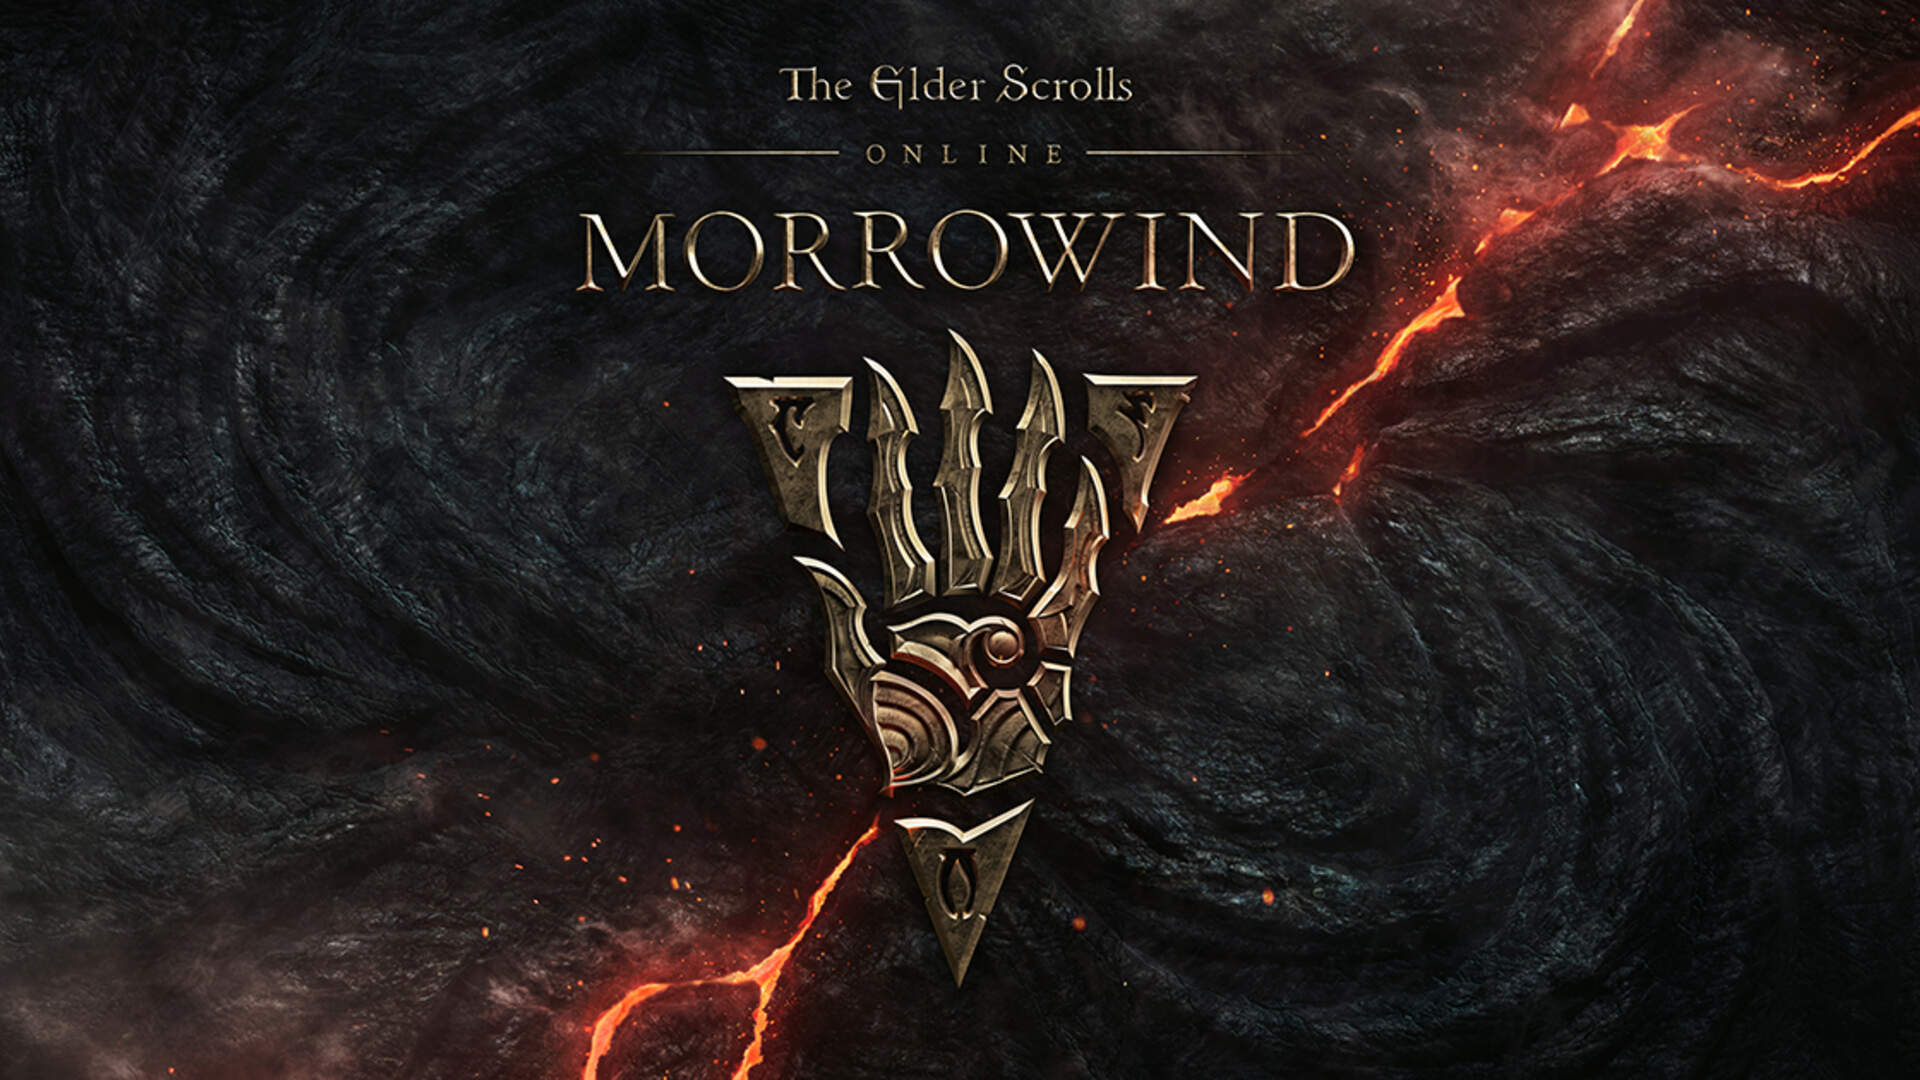 The Elder Scrolls Online: Morrowind - Reviews, Release Date, Price, New Characters, Quests, New Warden Class - Everything We Know